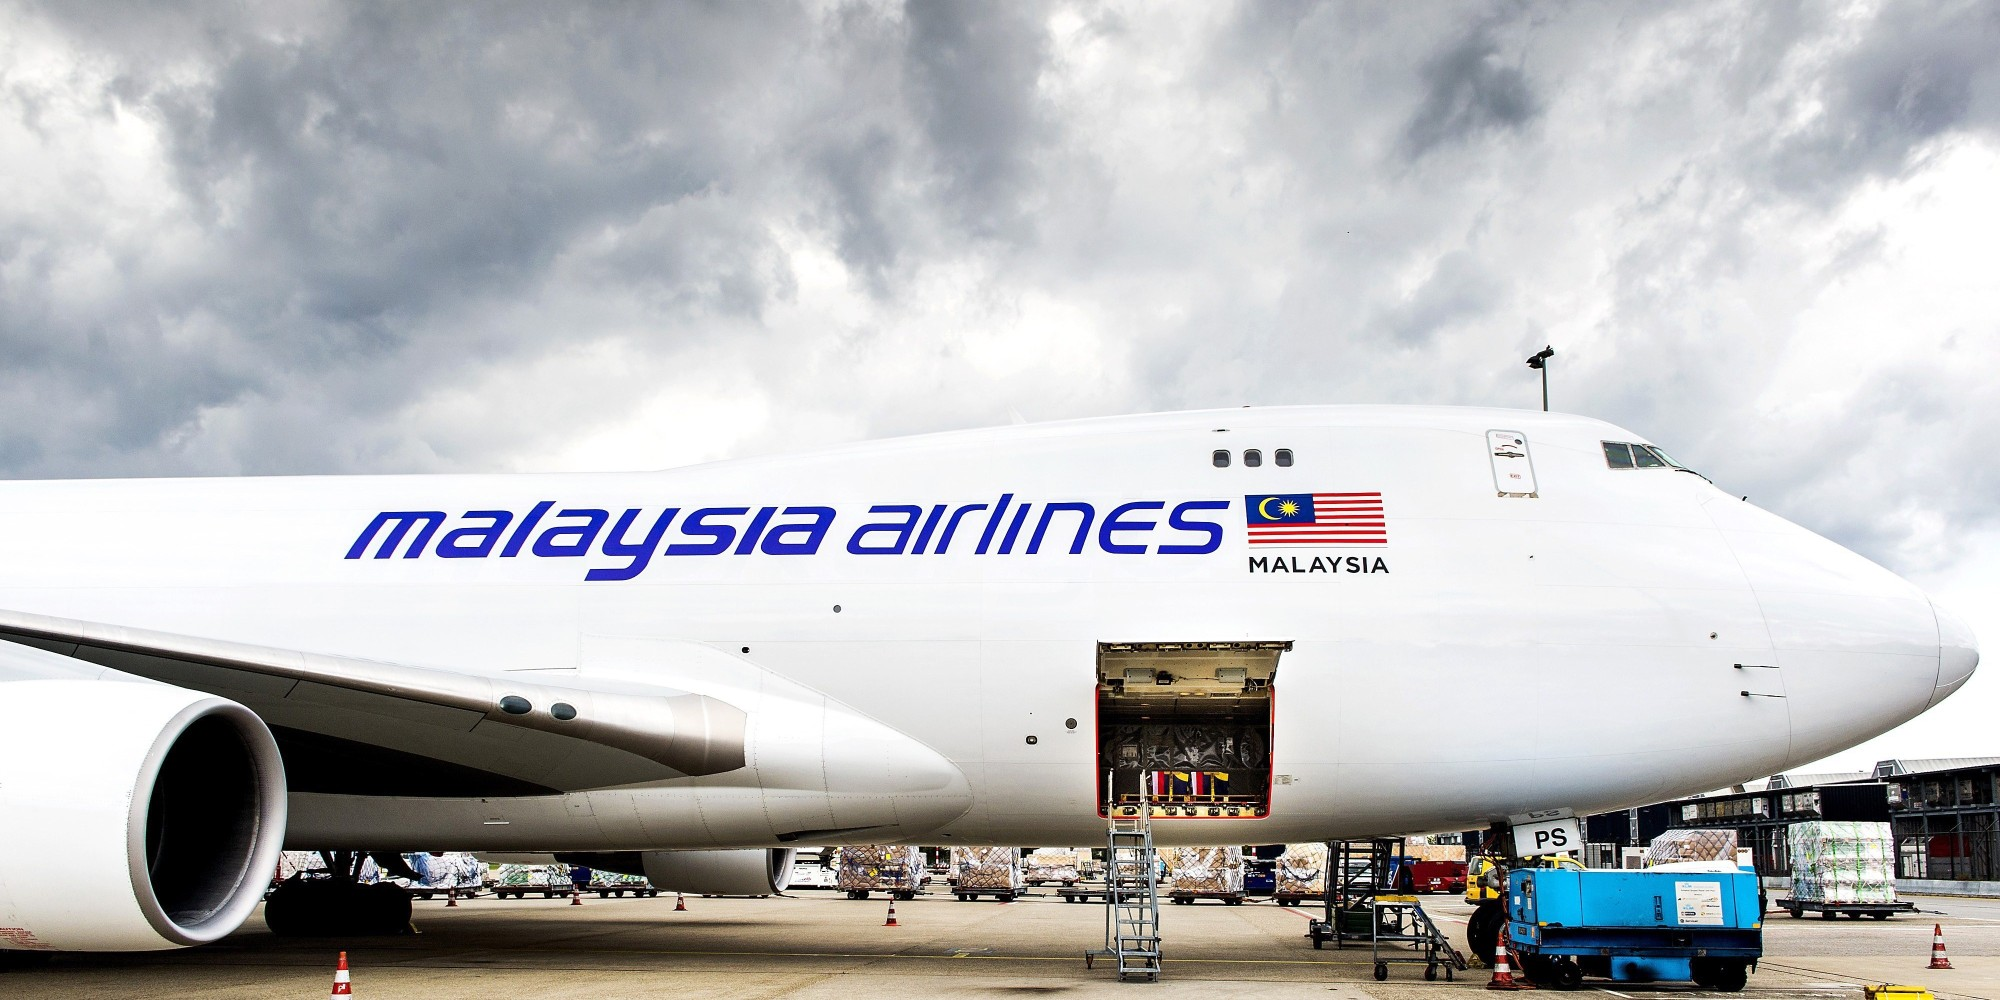 MALAYSIA AIRLINES facebook